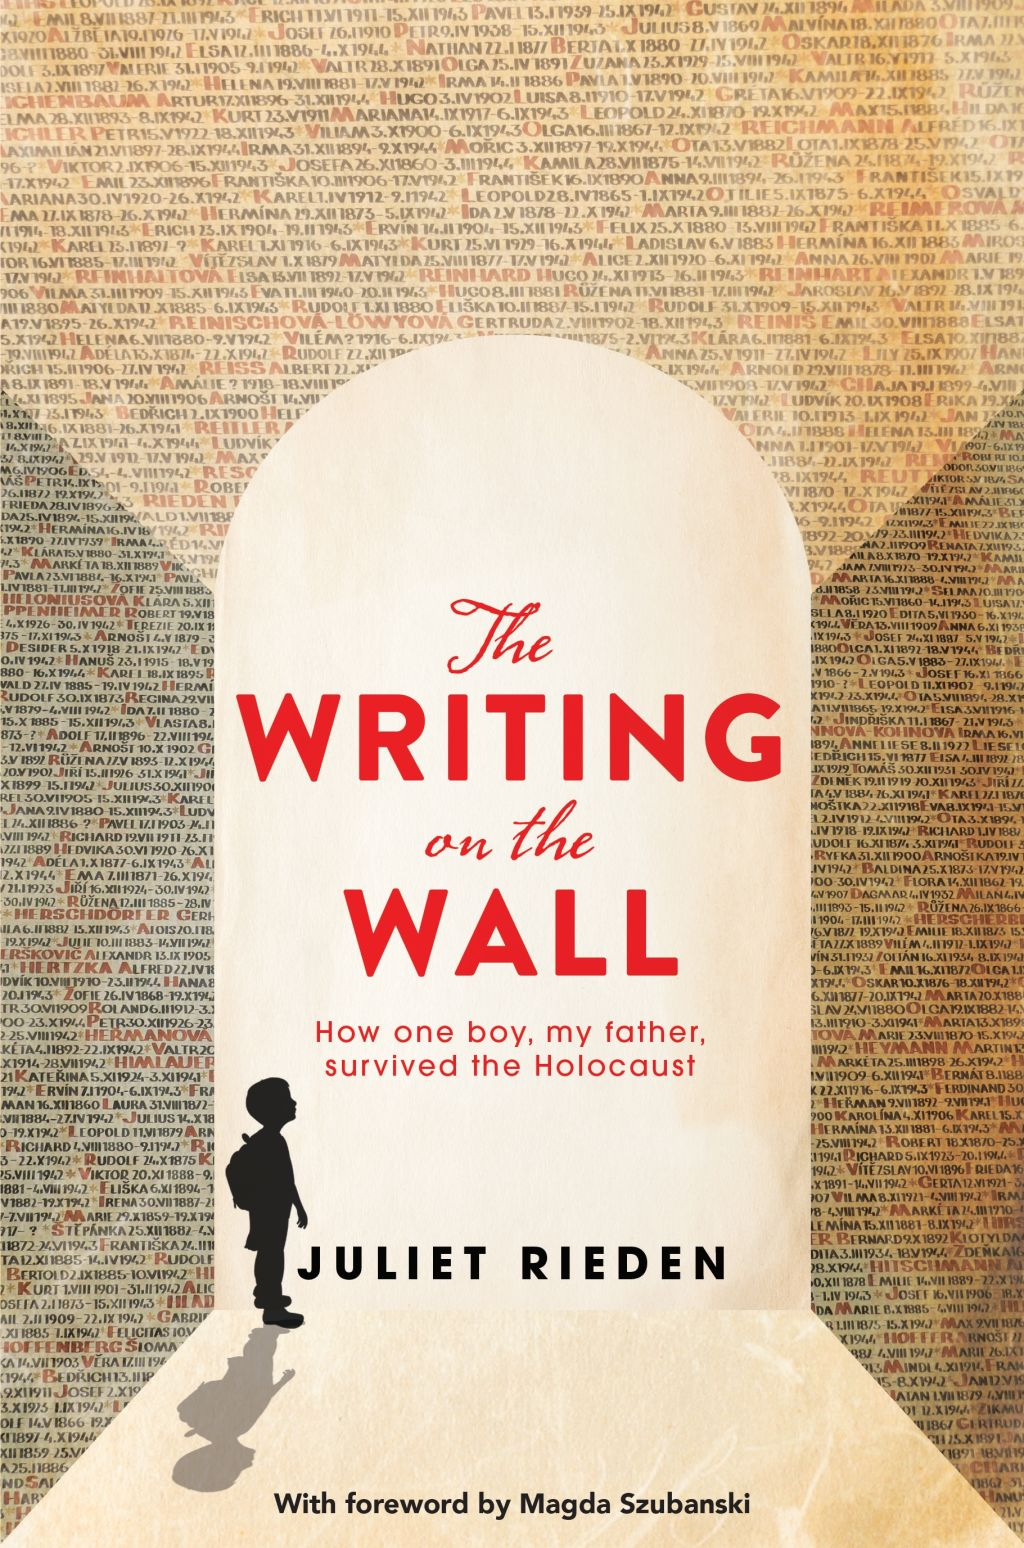 The Writing on the Wall by Juliet Riden.